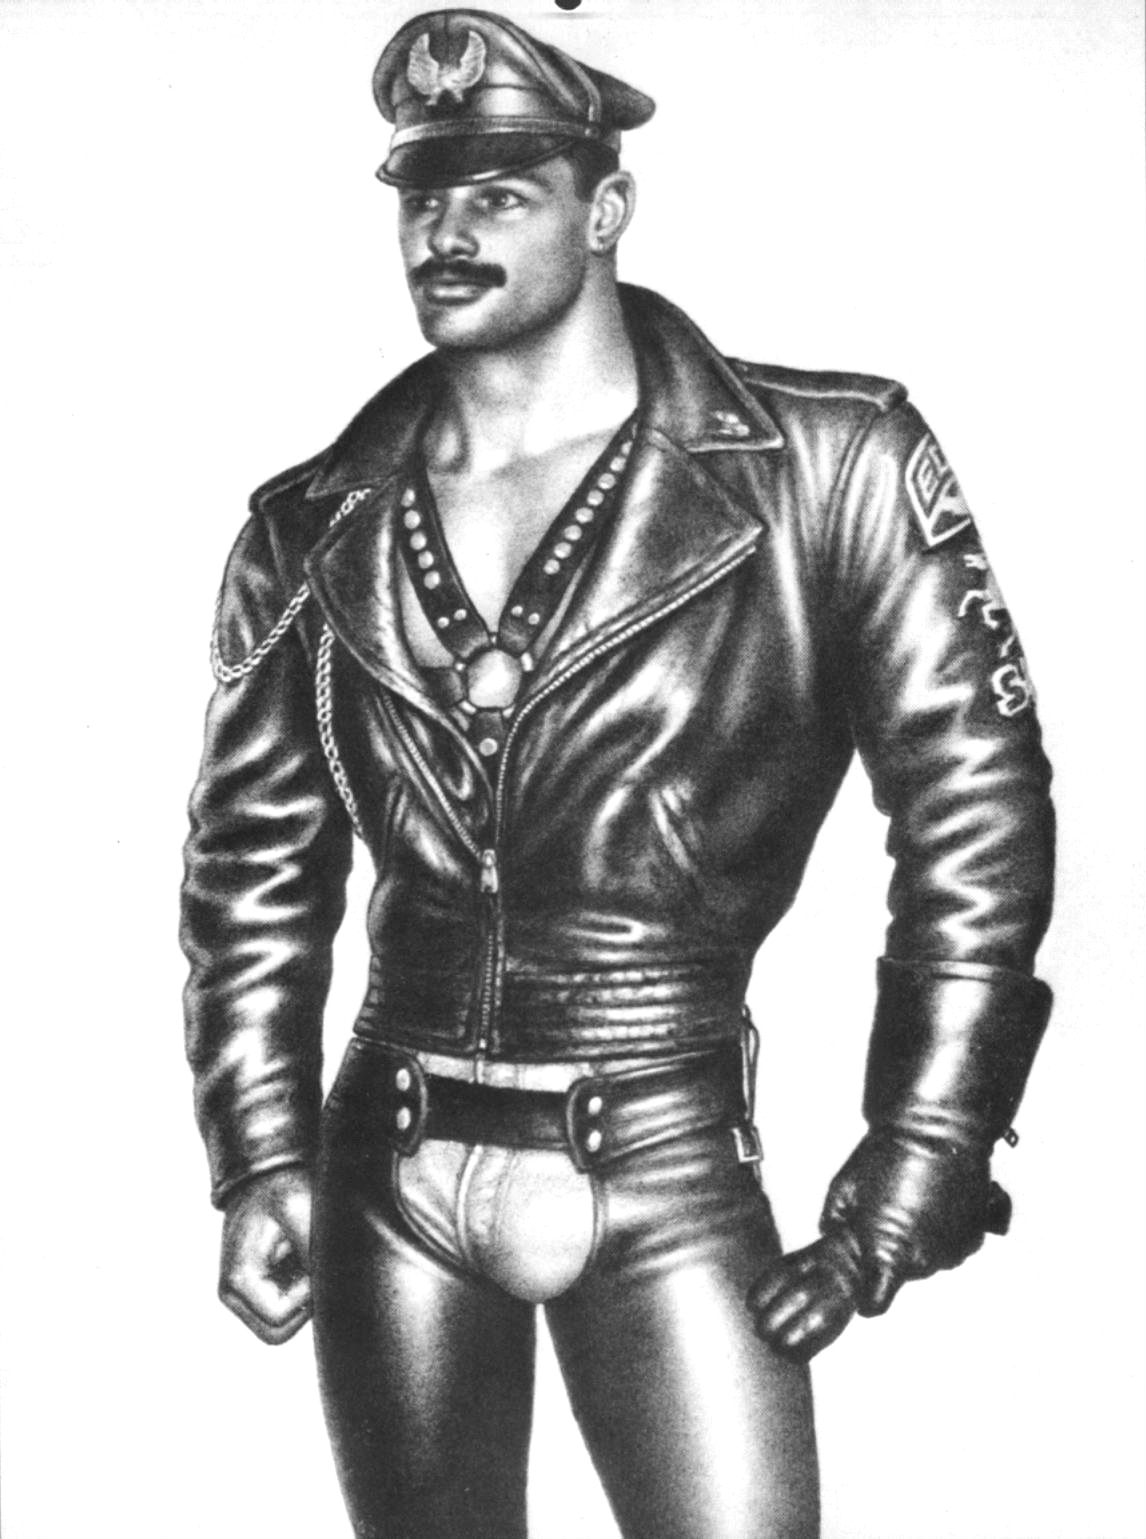 from Stephen gay leather videos